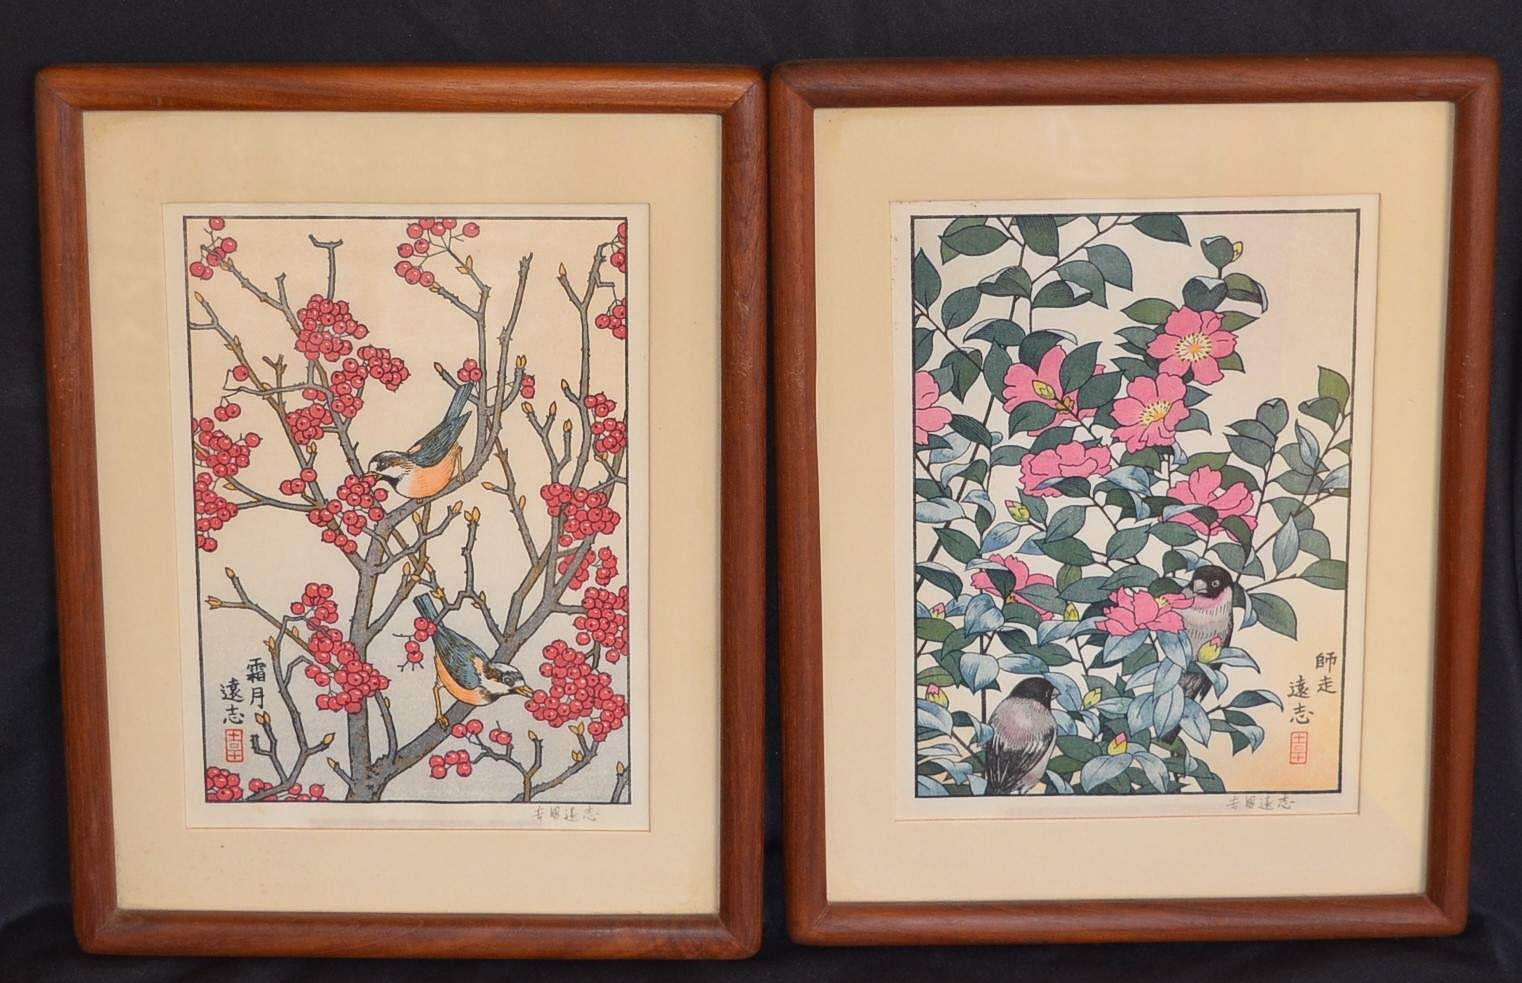 TOSHI YOSHIDA: THE FLOWERS AND BIRDS OF THE ORIENTAL YEAR - November / December